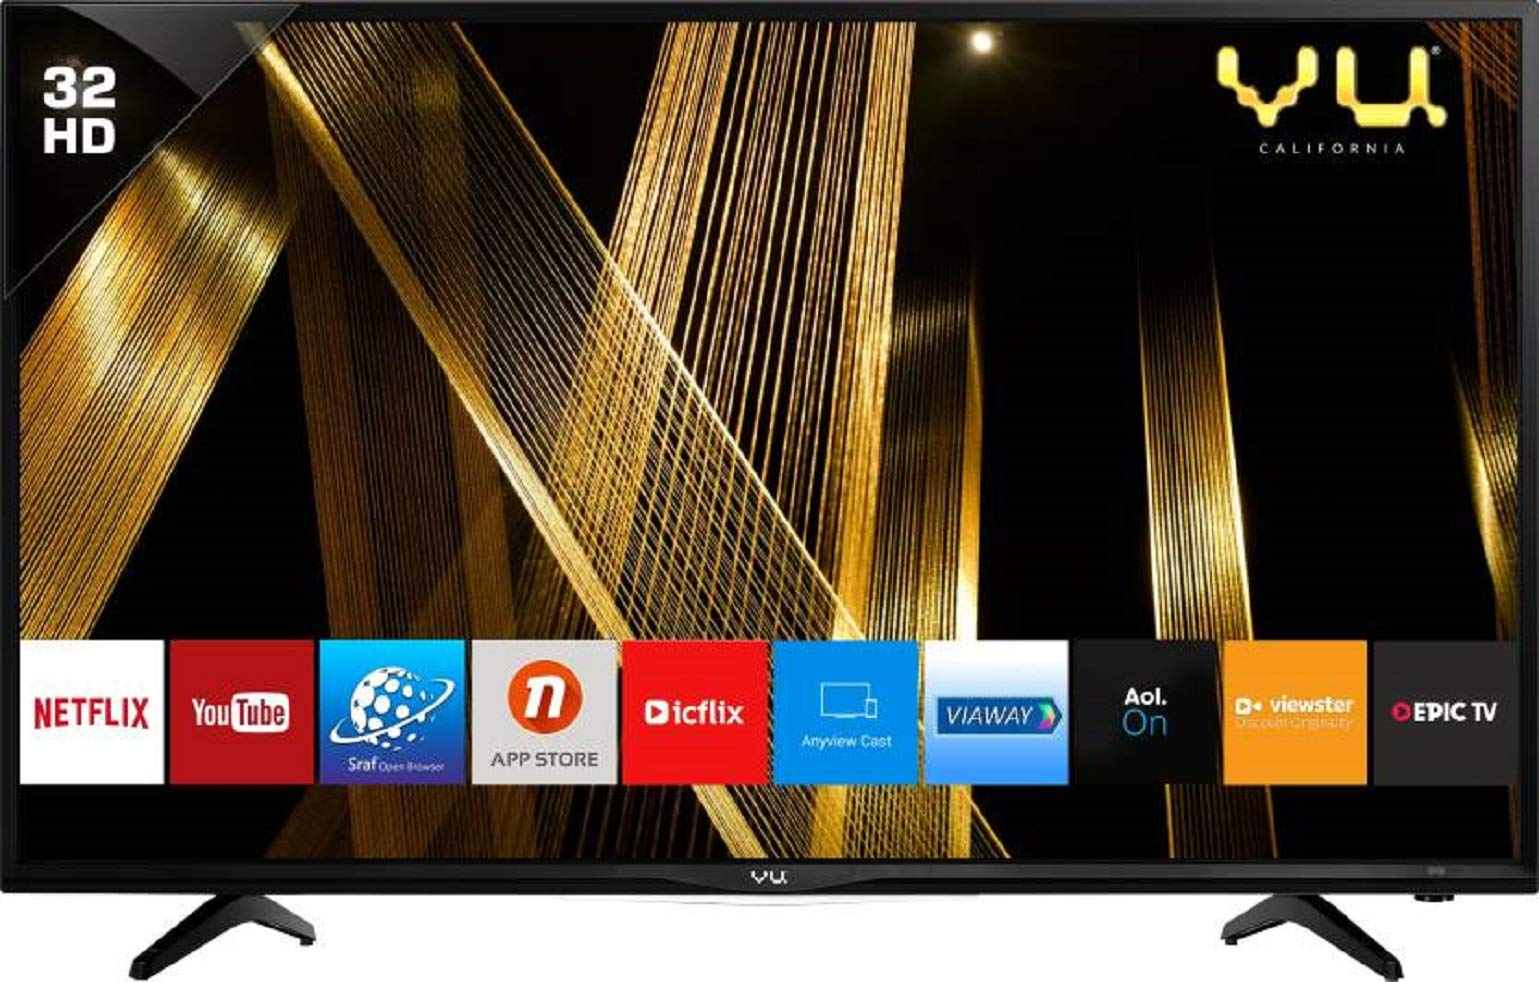 VU 80 cm (32 Inches) HD Ready Smart LED TV 32OA (Black) (2019 Model)